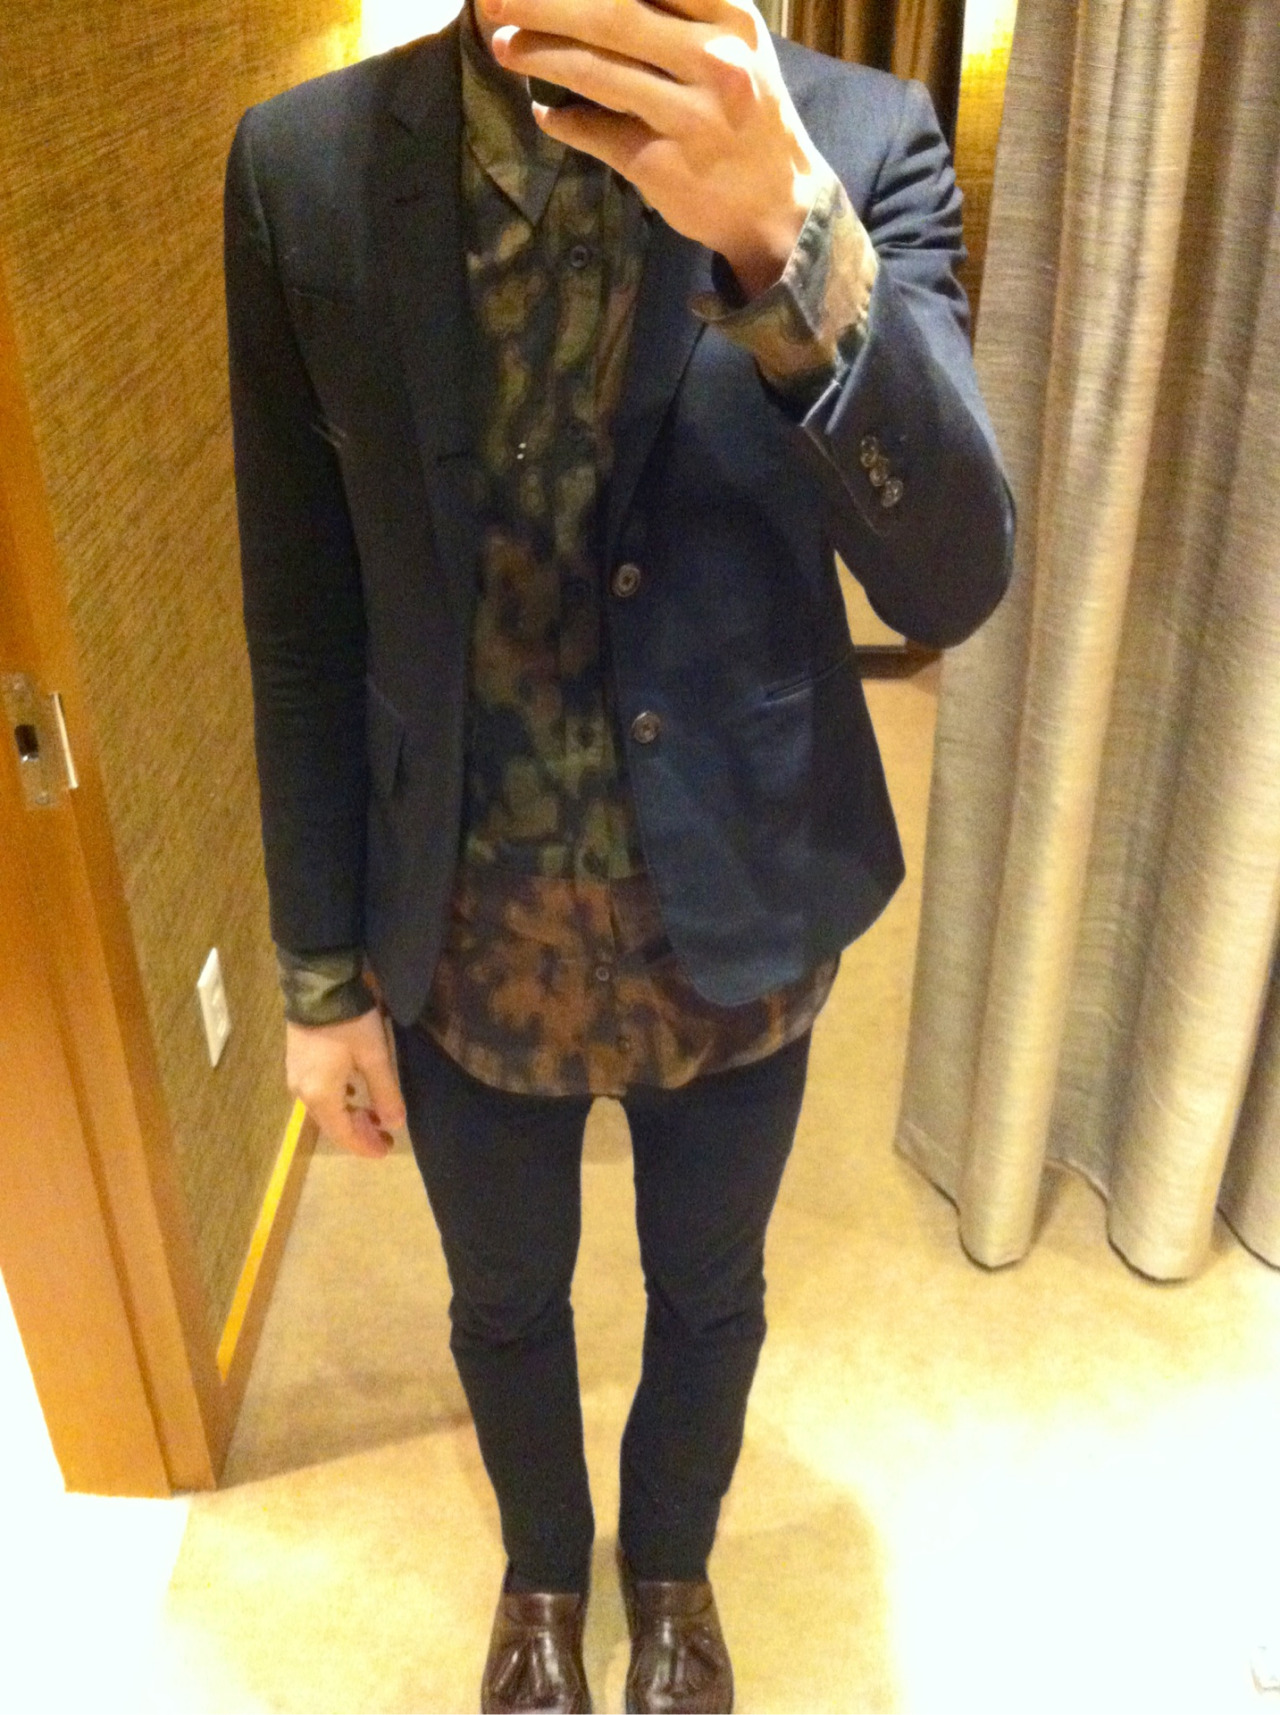 nickelcobalt:  bostonroll:  At work today: Thom Browne blazer Dries ss13 sheer camo shirt Saint Laurent Paris ss13 jeans Burberry Prorsum aw11 tassle loafers  Sean flexing on your ss13